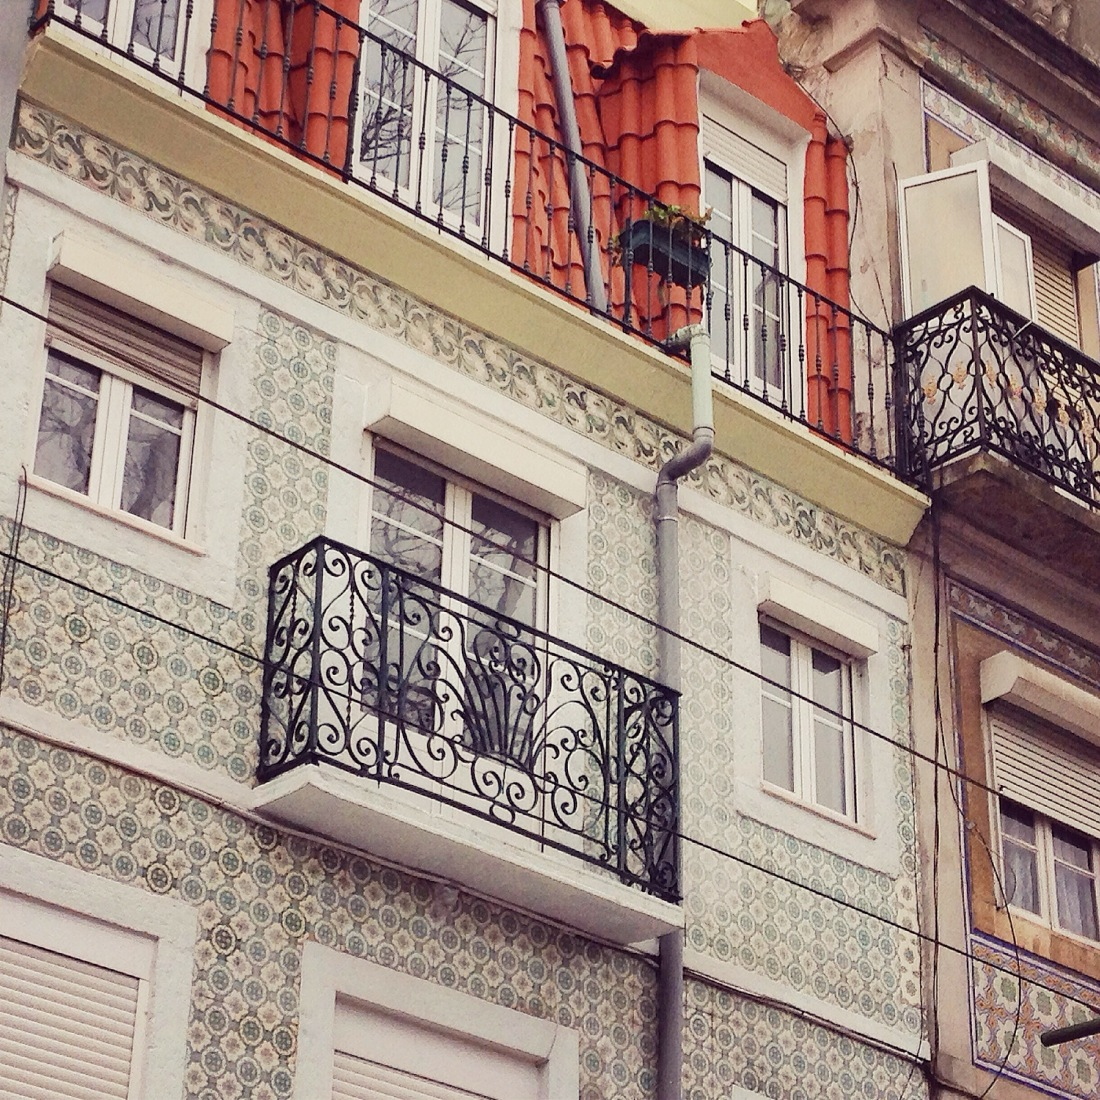 Lisbon by @youneedacocktail